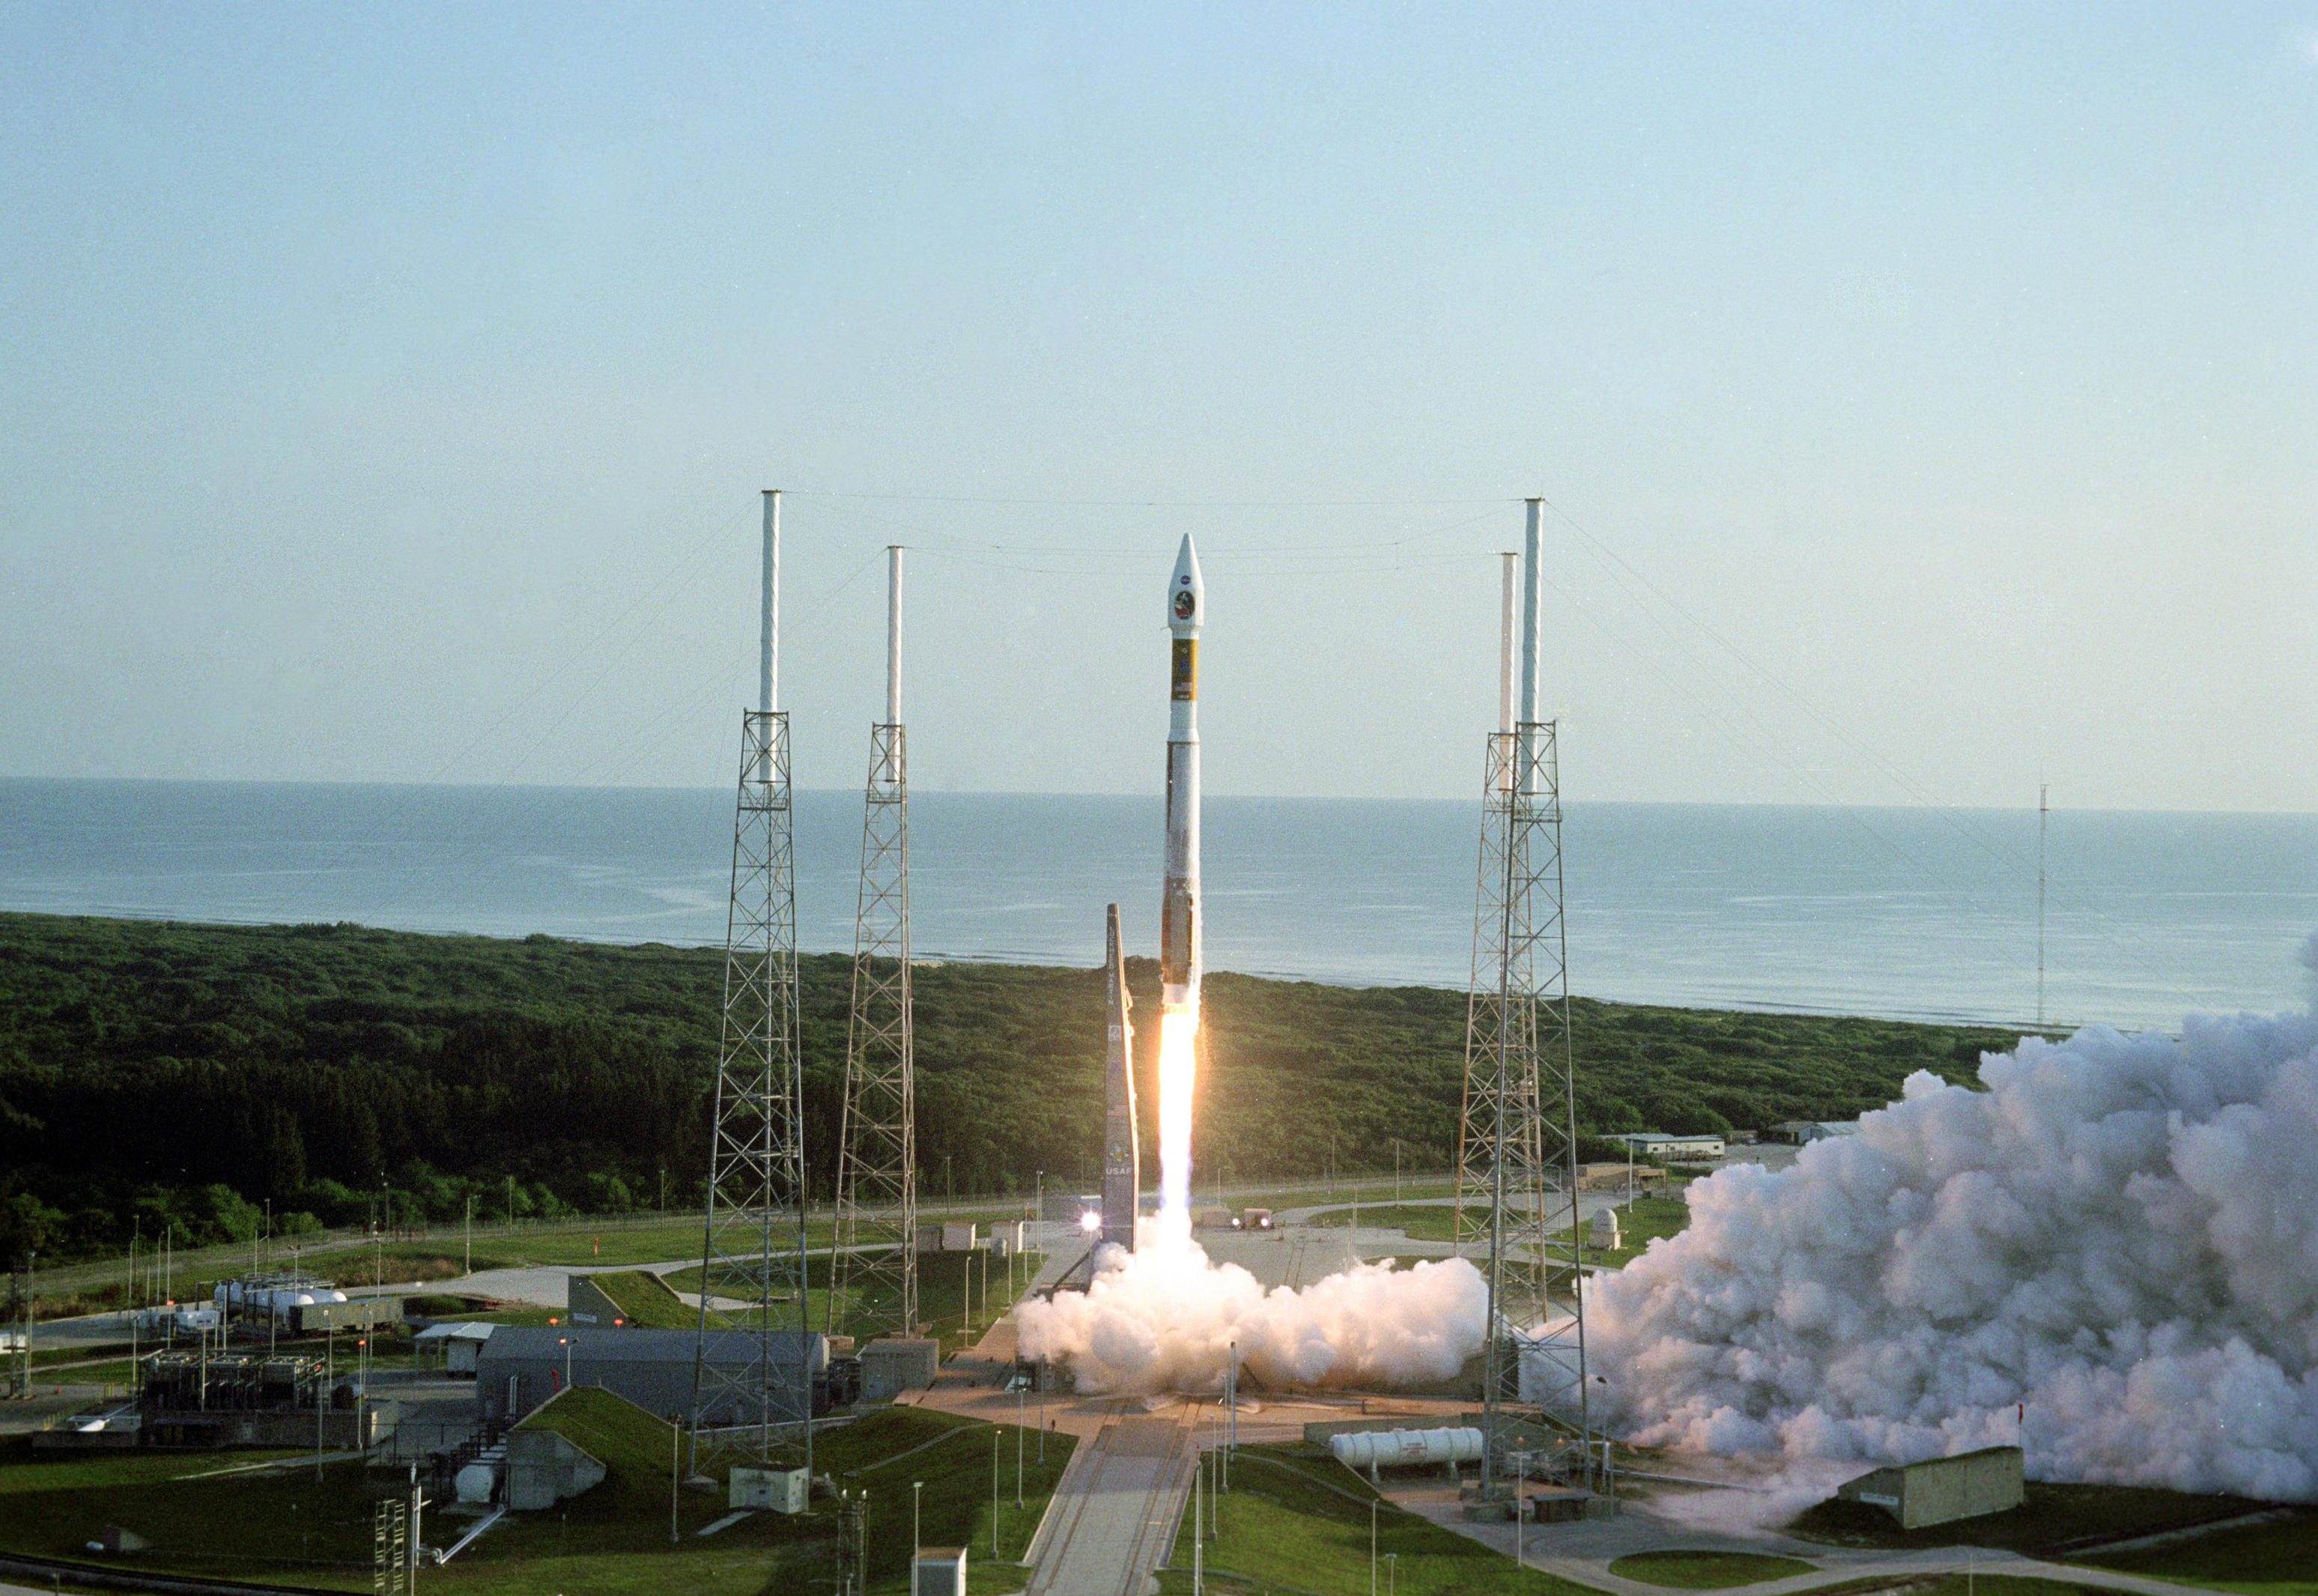 With the Atlantic Ocean as a backdrop, an Atlas V launch vehicle, 19 stories tall, with a two-ton Mars Reconnaissance Orbiter on top, roars away from Launch Complex 41 at Cape Canaveral Air Force Station at 7:43 a.m. EDT on Aug. 12, 2005.